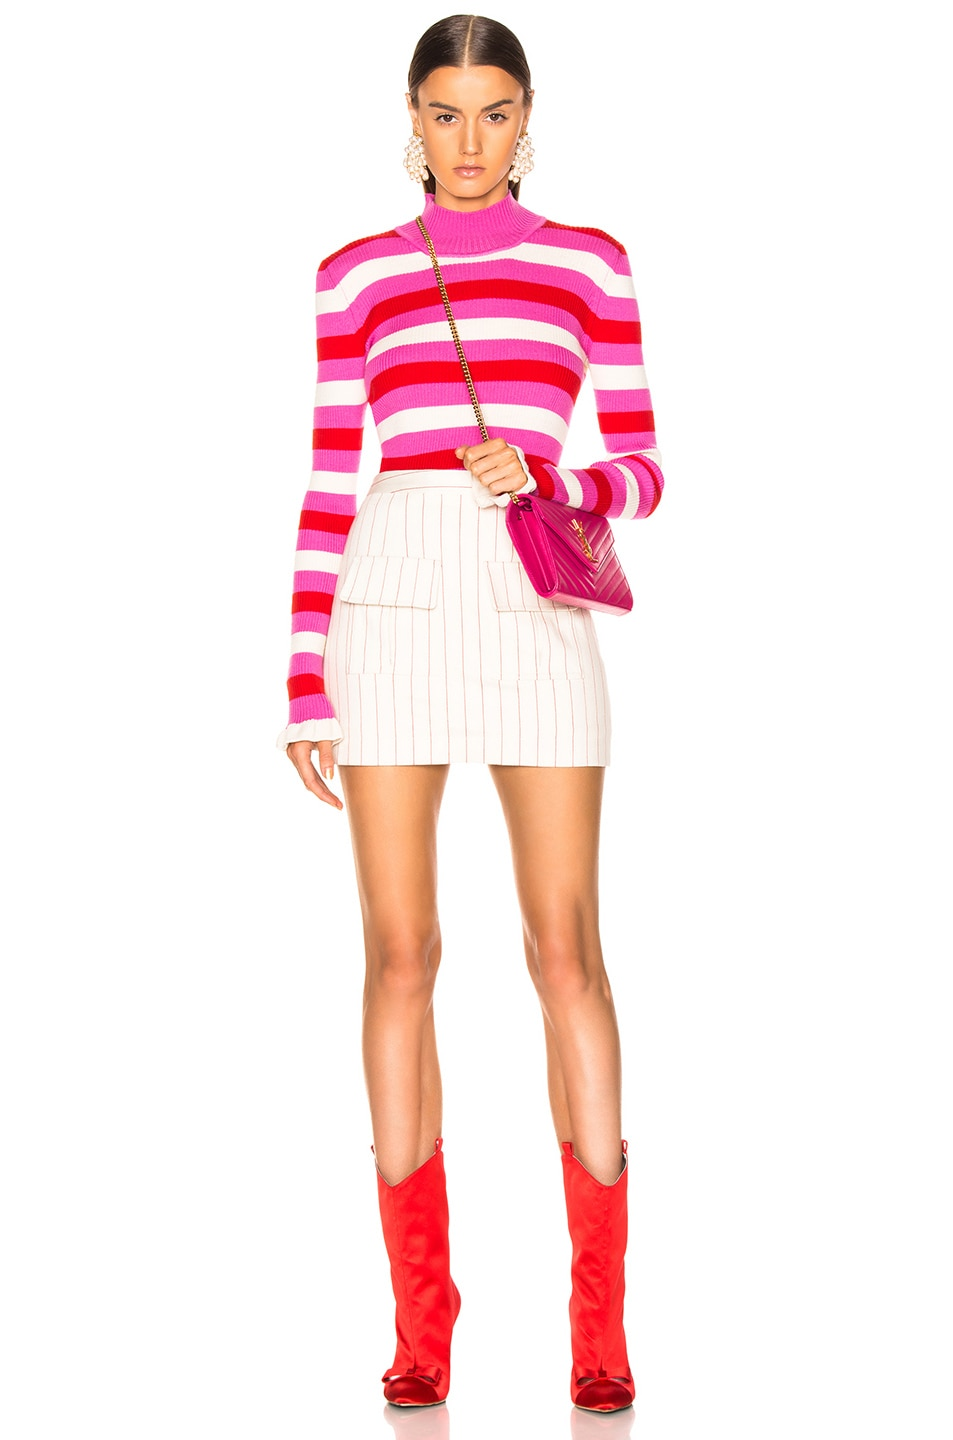 Image 4 of Maggie Marilyn You Make Me Happy Top in Pink, White, Red Stripe